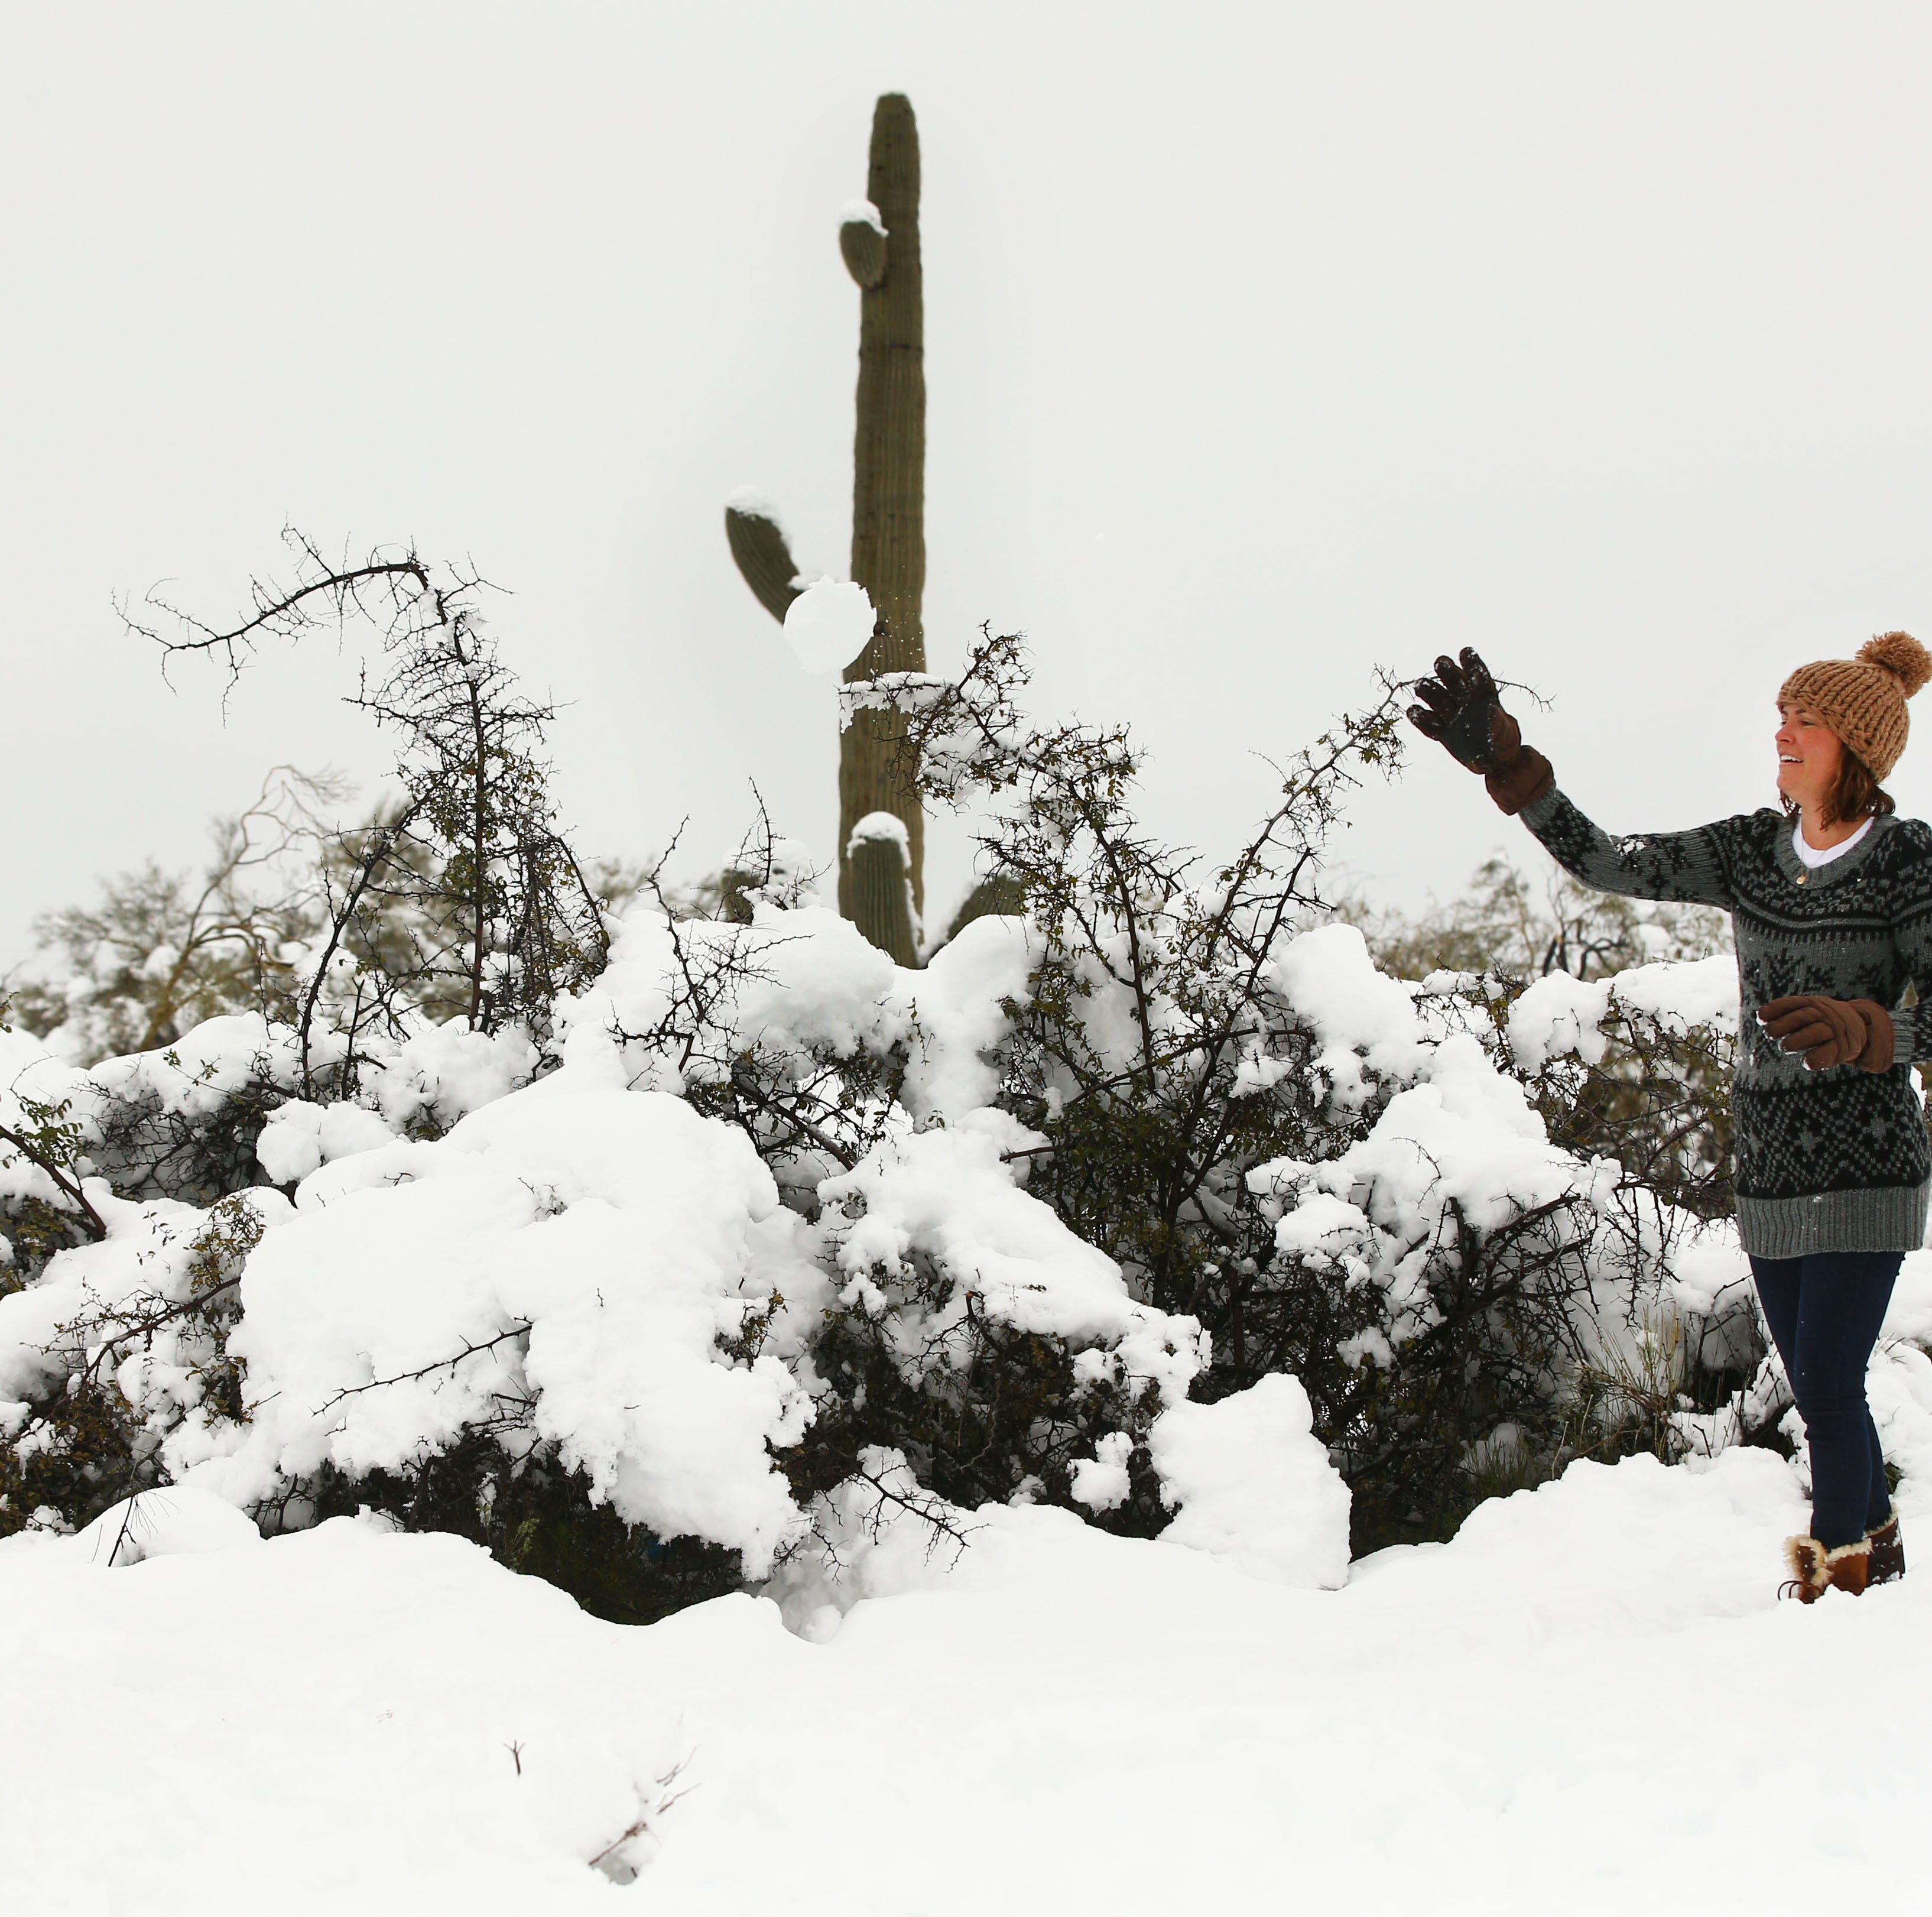 Arizona storm updates: It's not over — 'Significant weather advisory' issued for Phoenix area